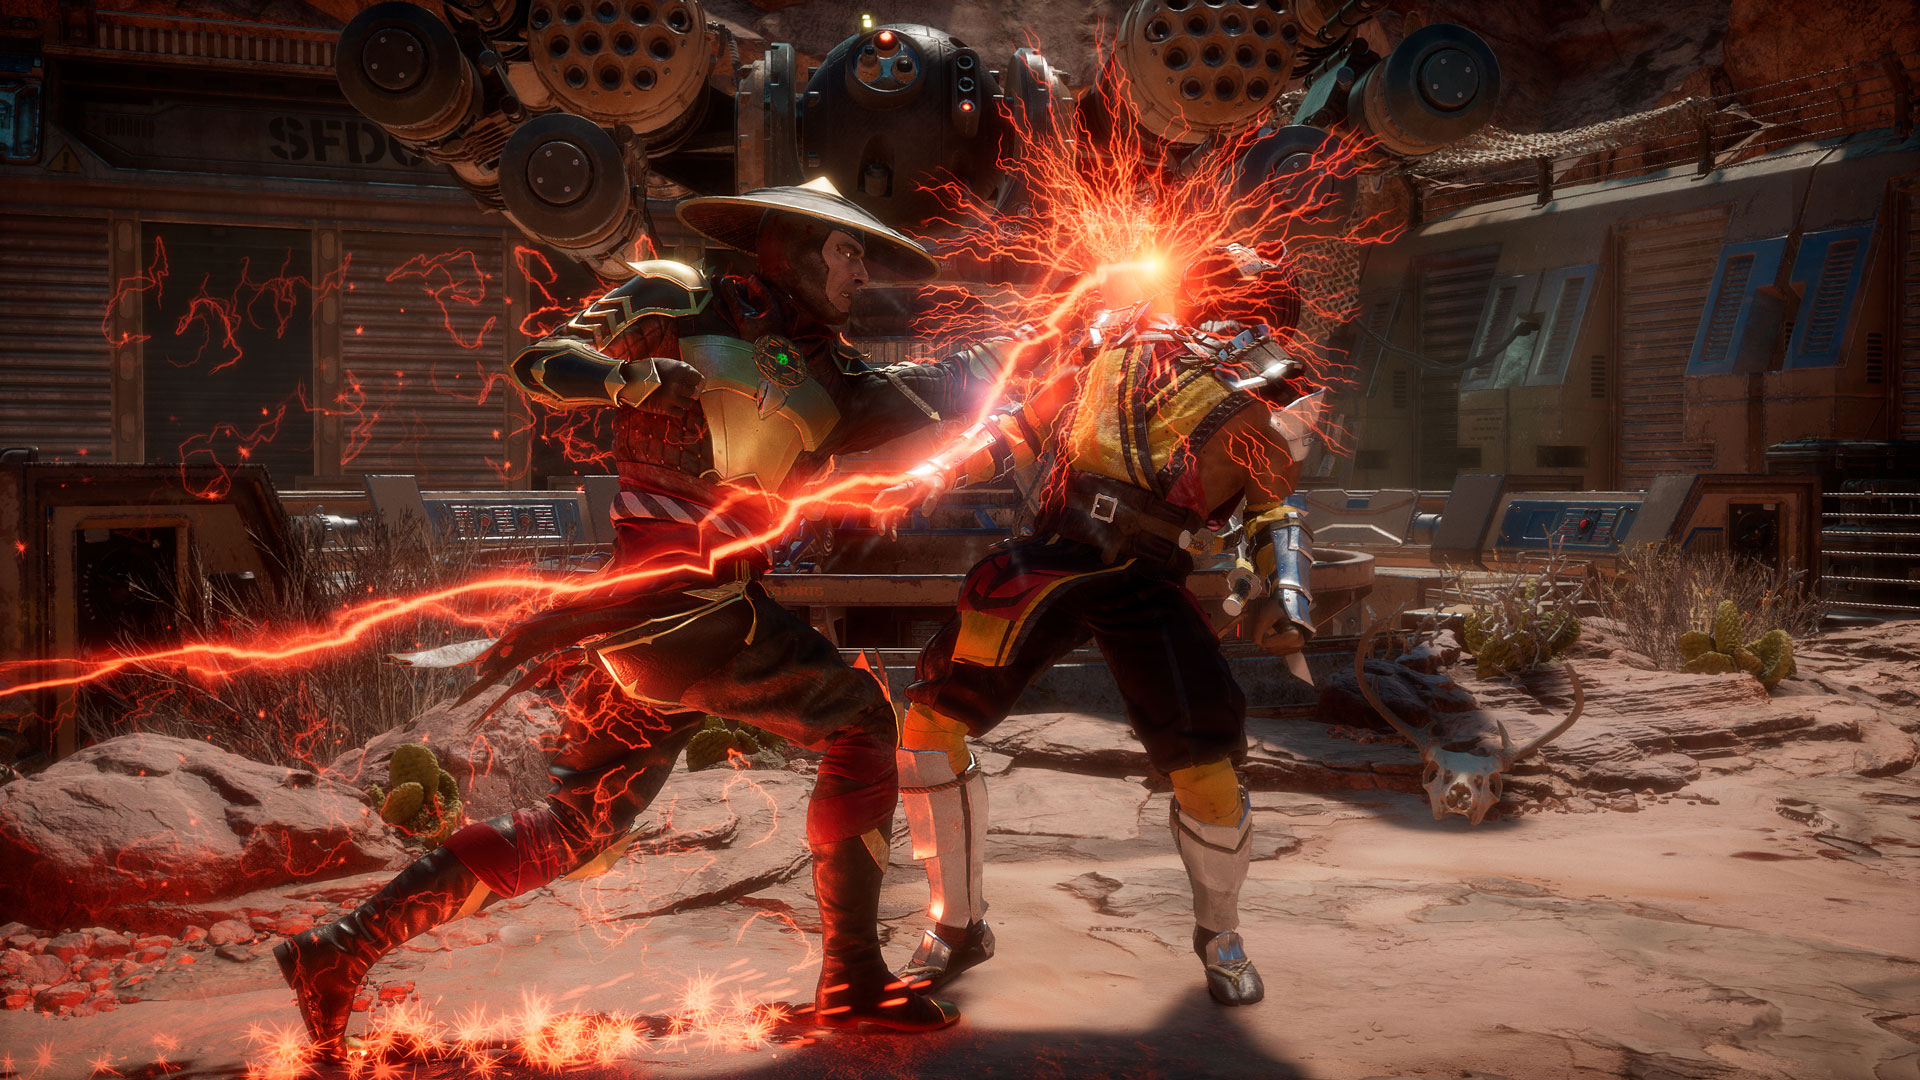 Mortal Kombat 11 Switch Impressions Suggest Game is Running